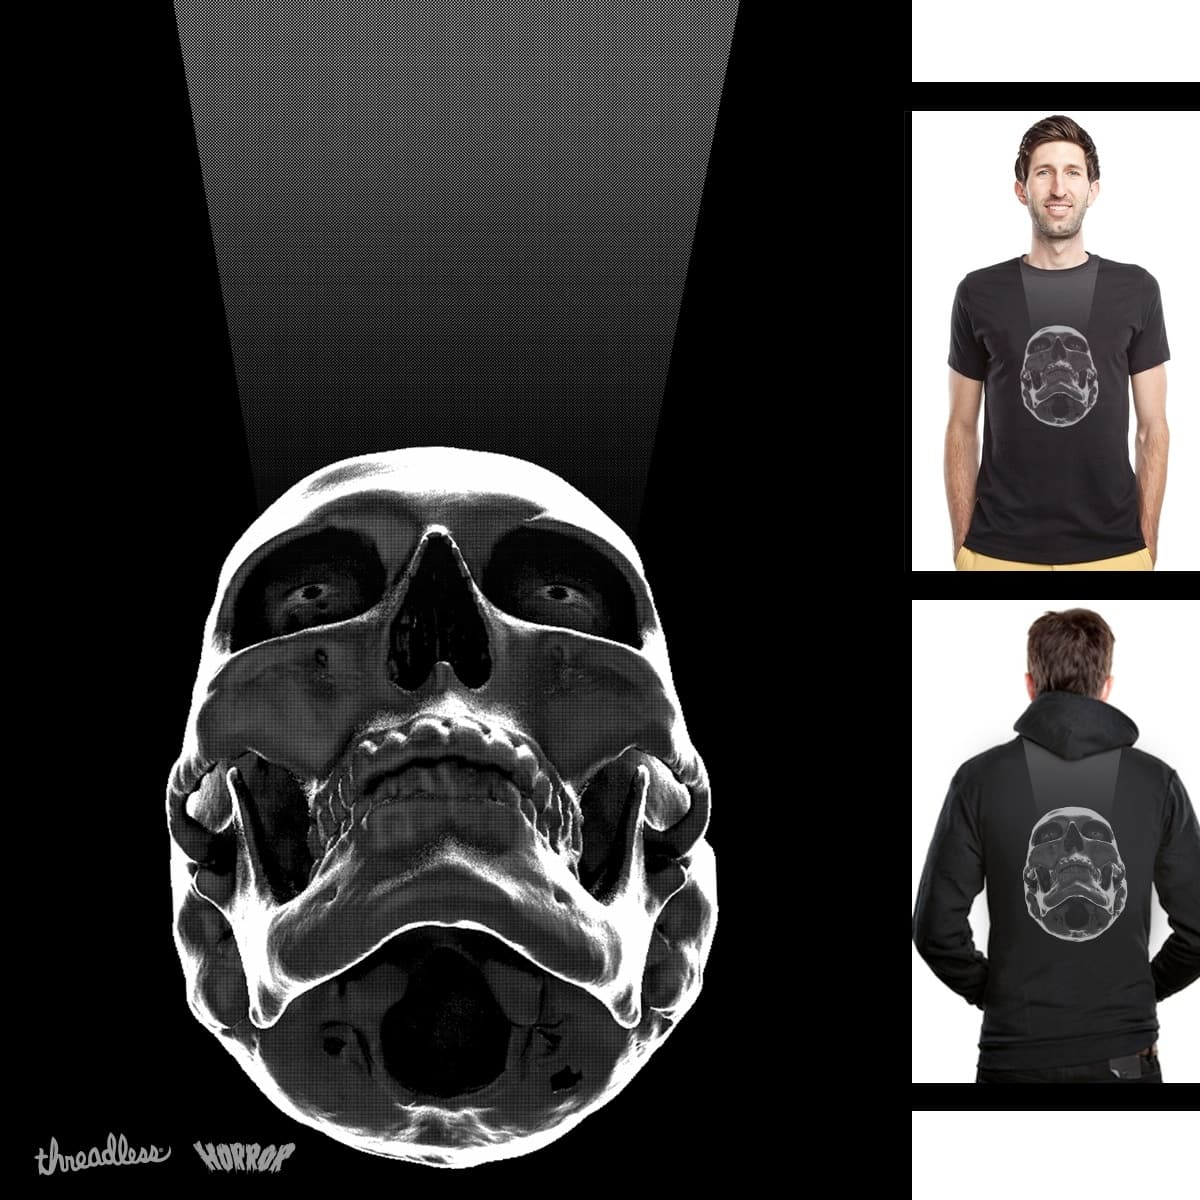 Death Stare by benk_ing on Threadless